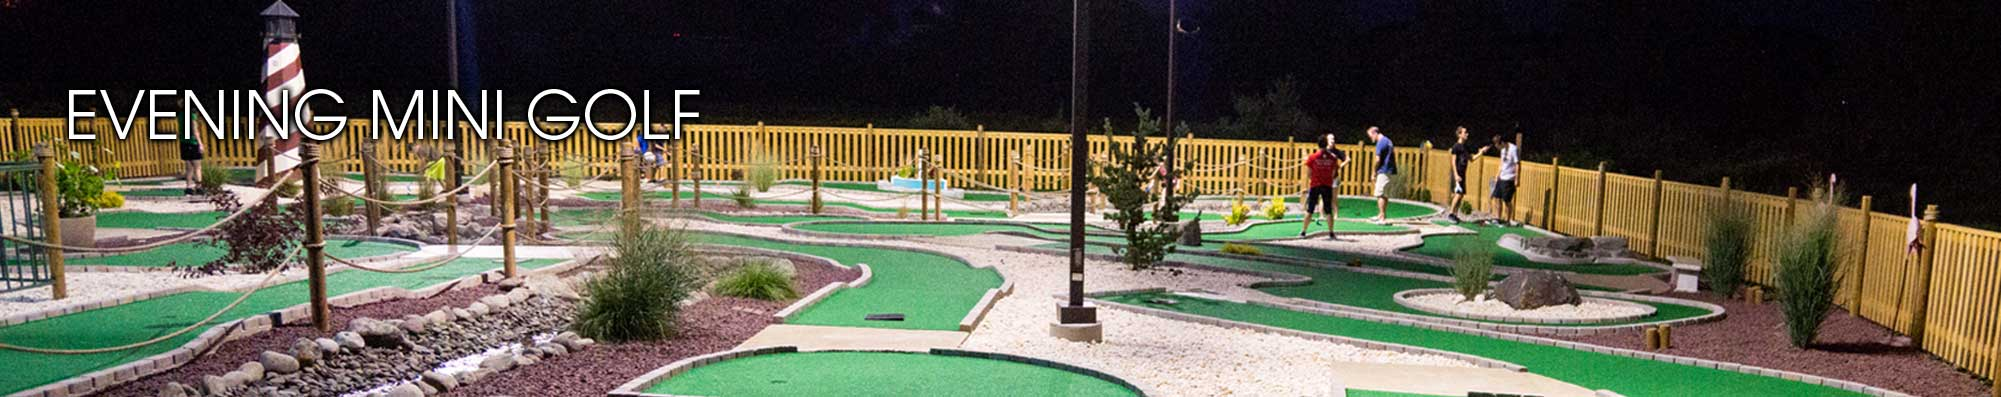 minigolf-night-slide